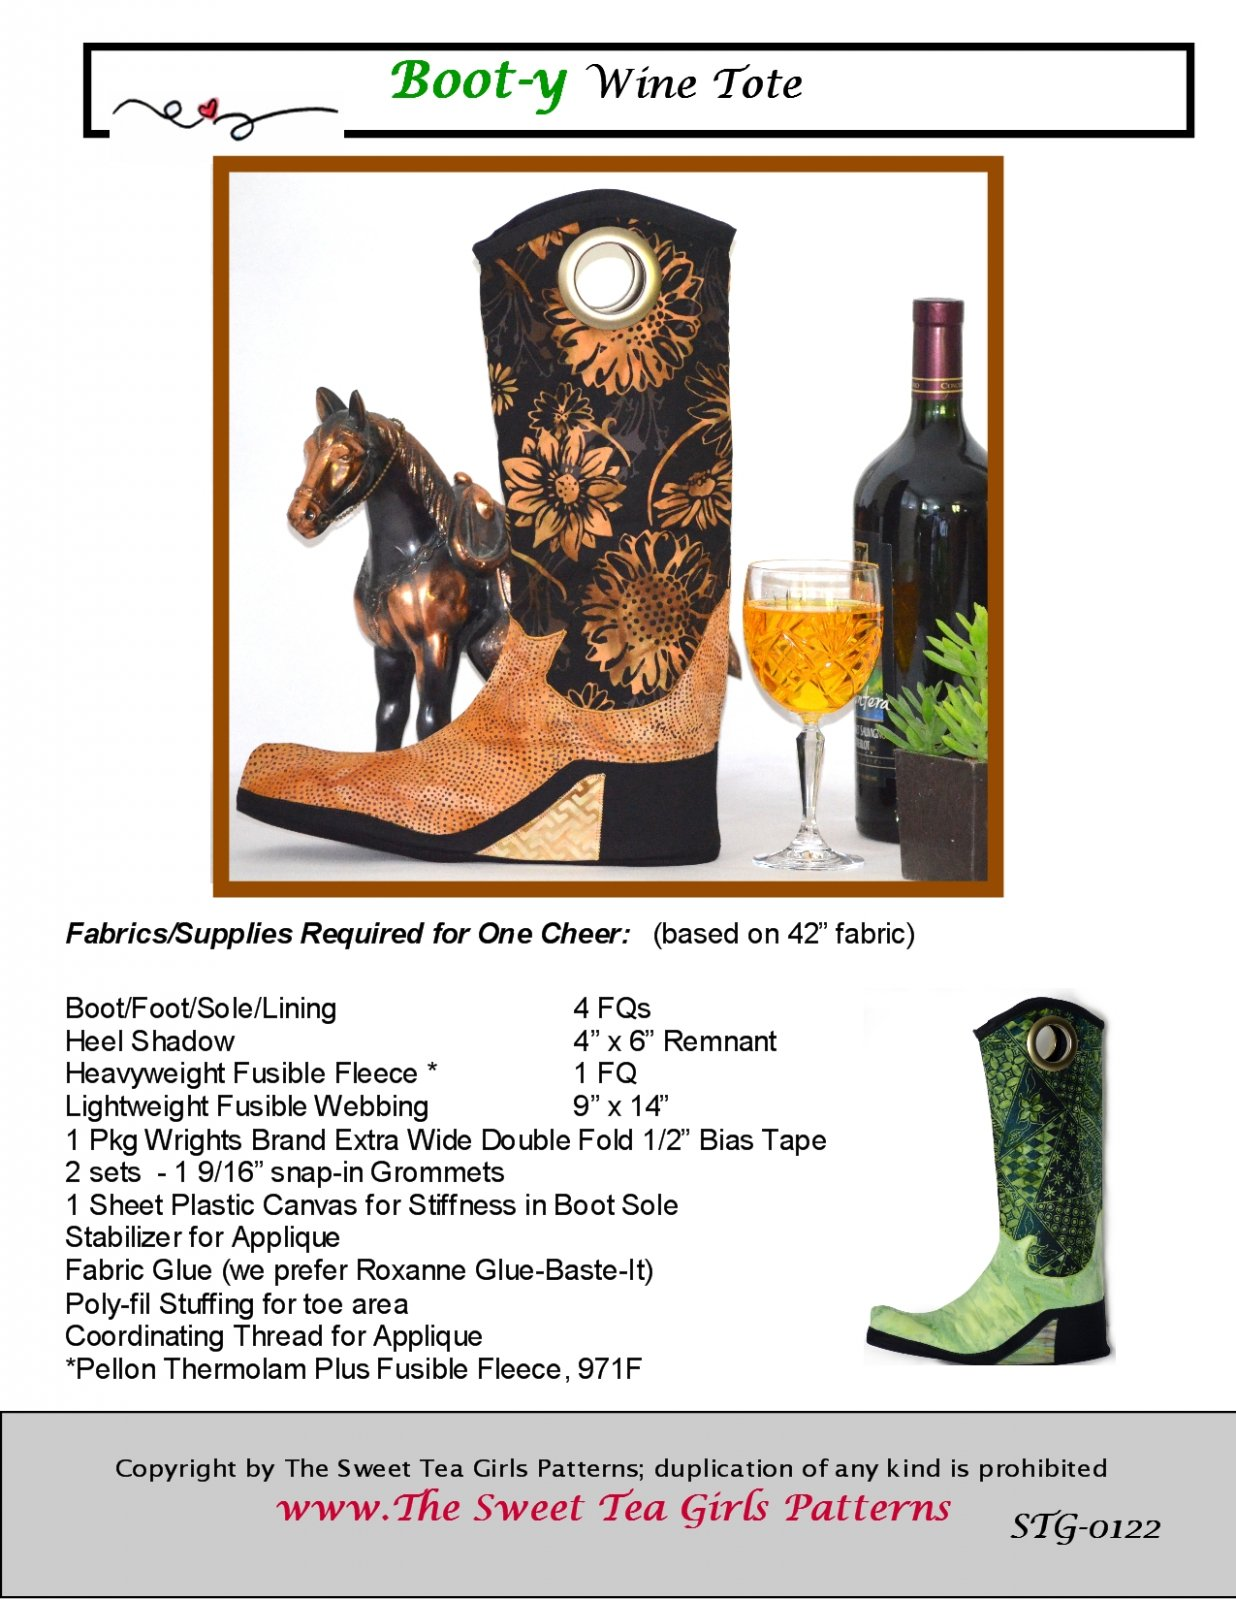 Boot-y Wine Tote - Downloadable PDF